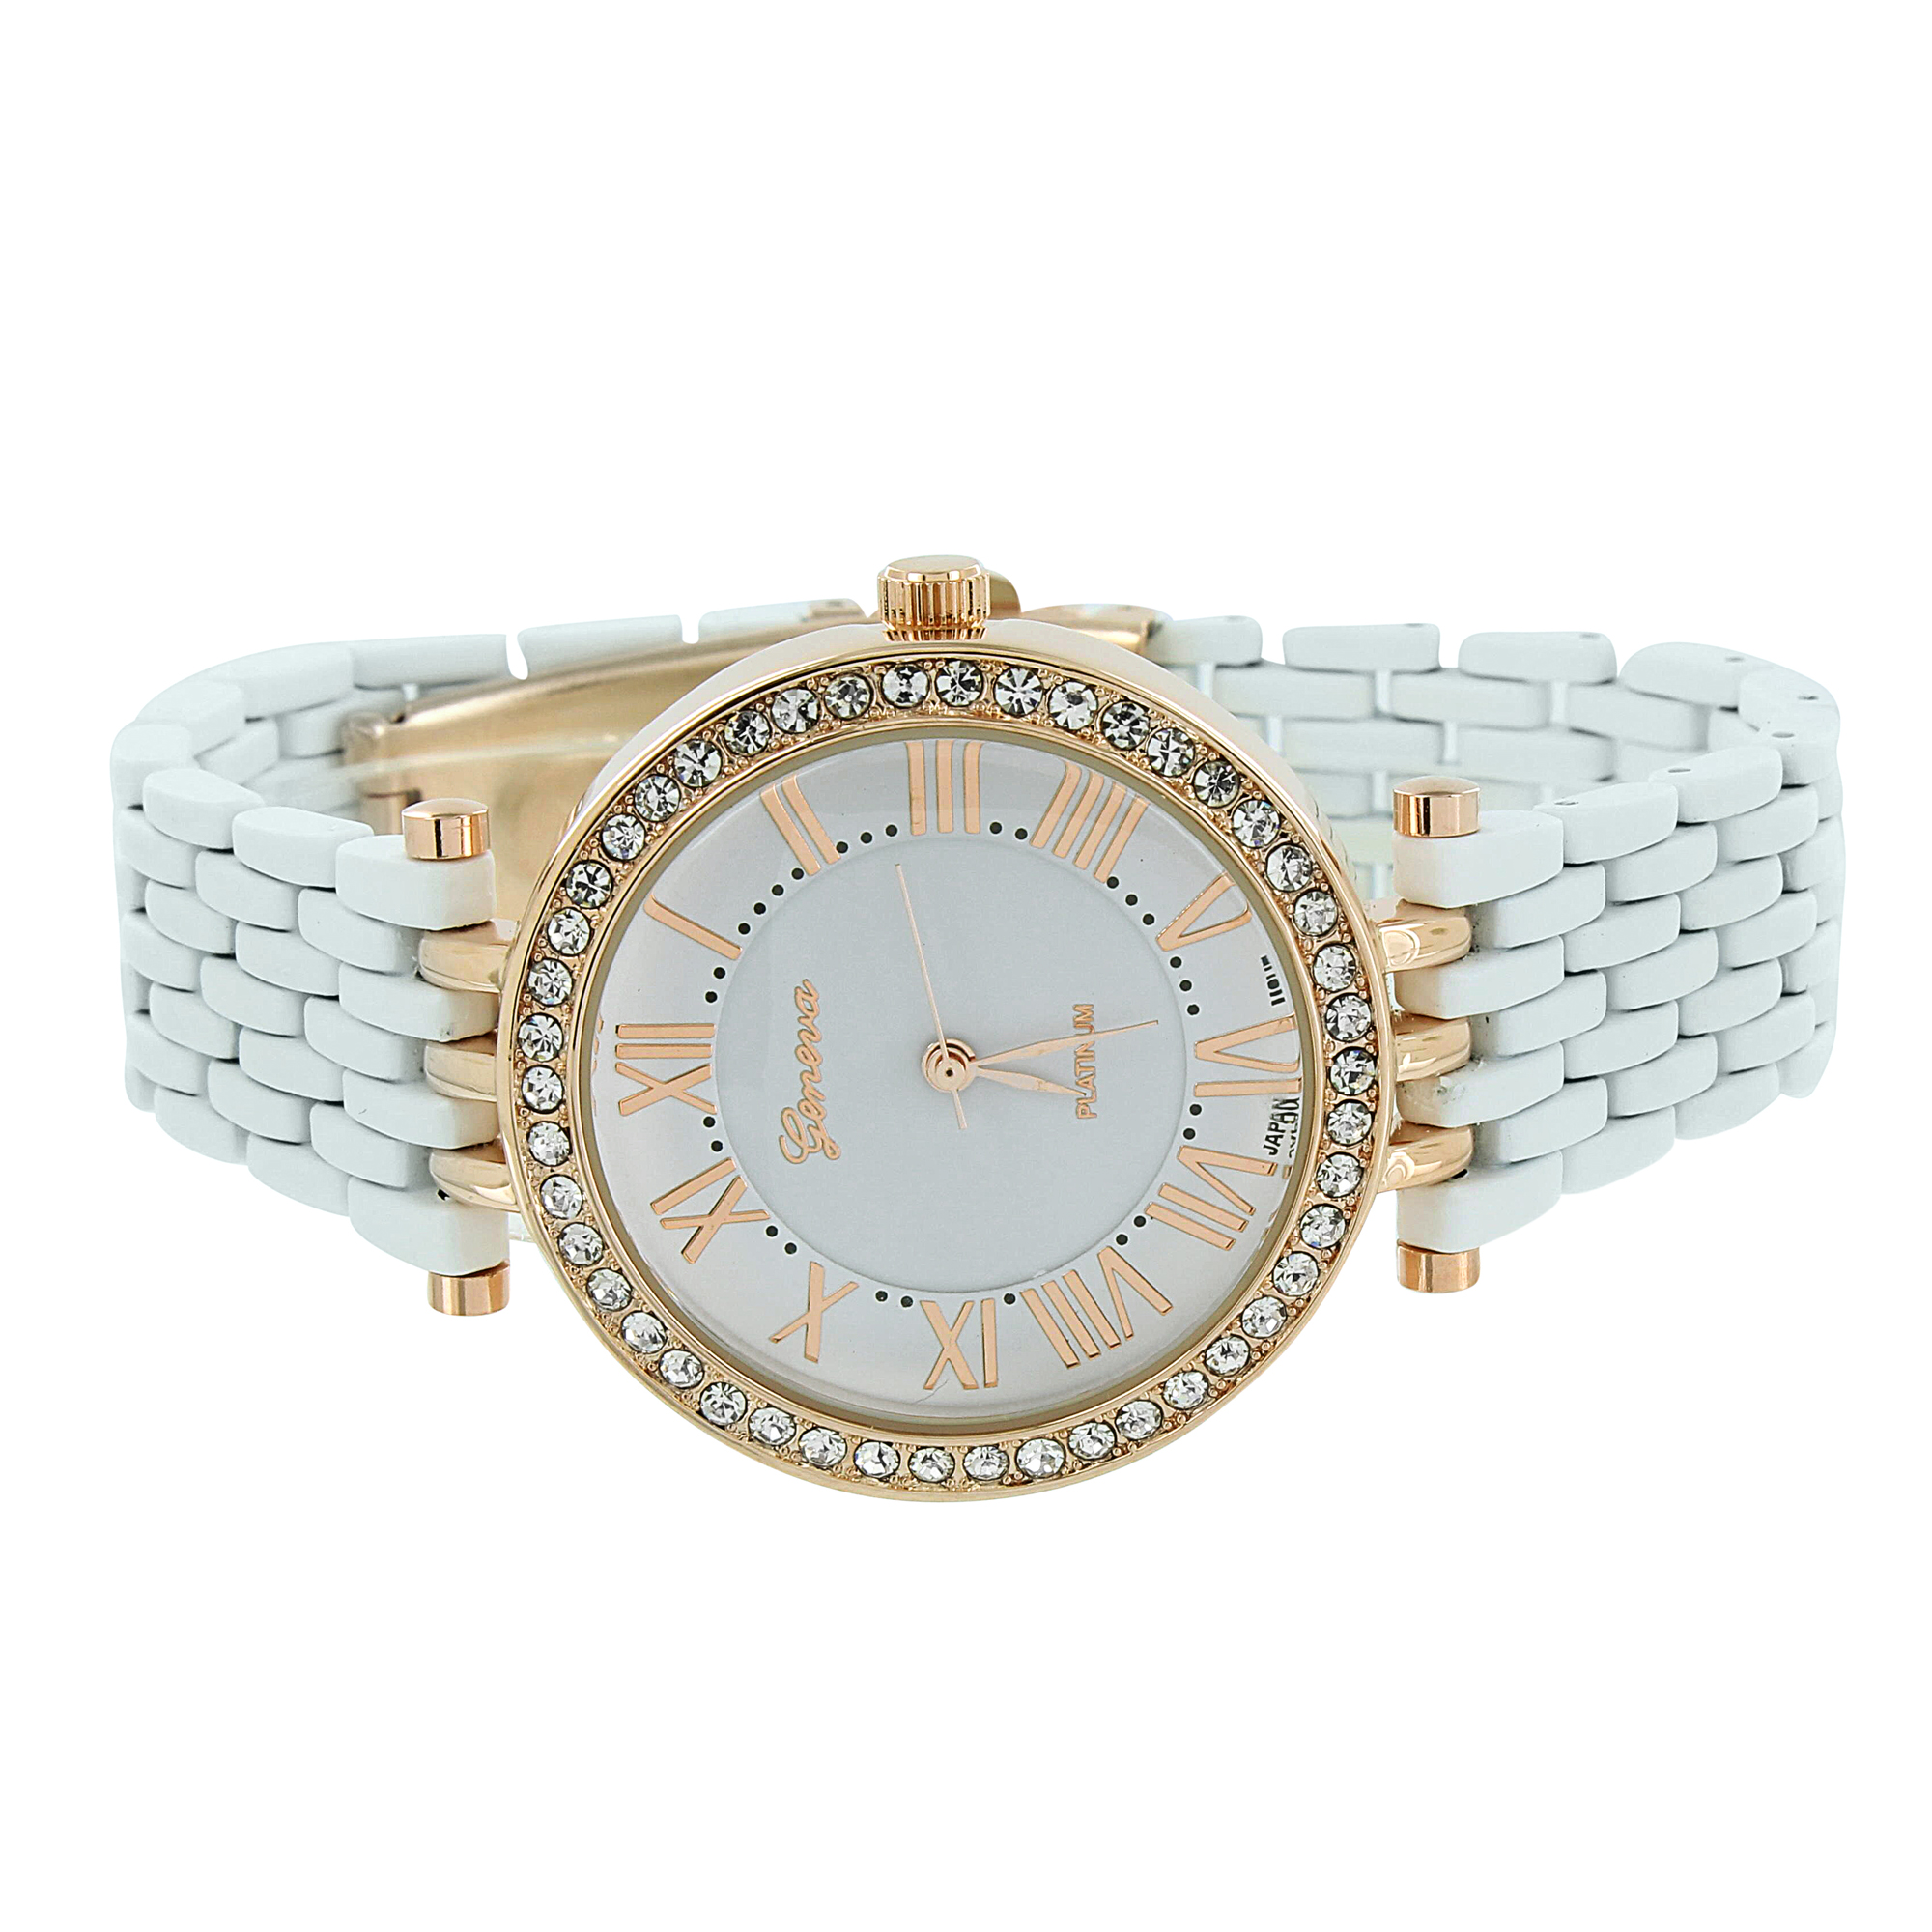 Womens White Geneva Watch Rose Gold Analog Finish Display Simulated Diamonds Brand New On Sale